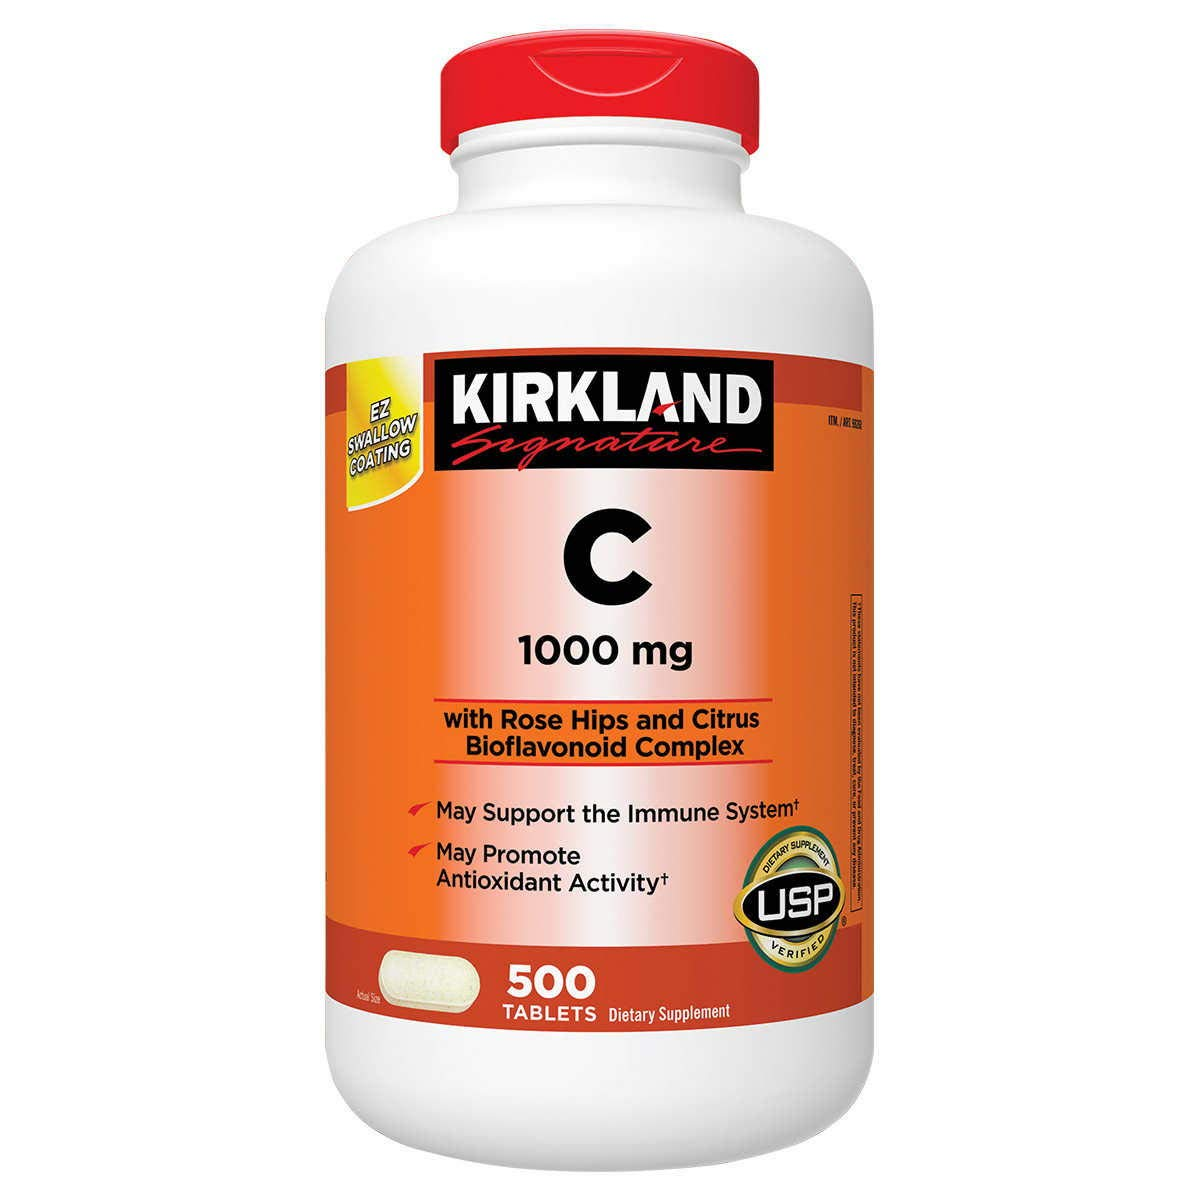 Kirkland Signature Vitamin C 1000mg, with Rose Hips 500 Tabs each (pack of 2)